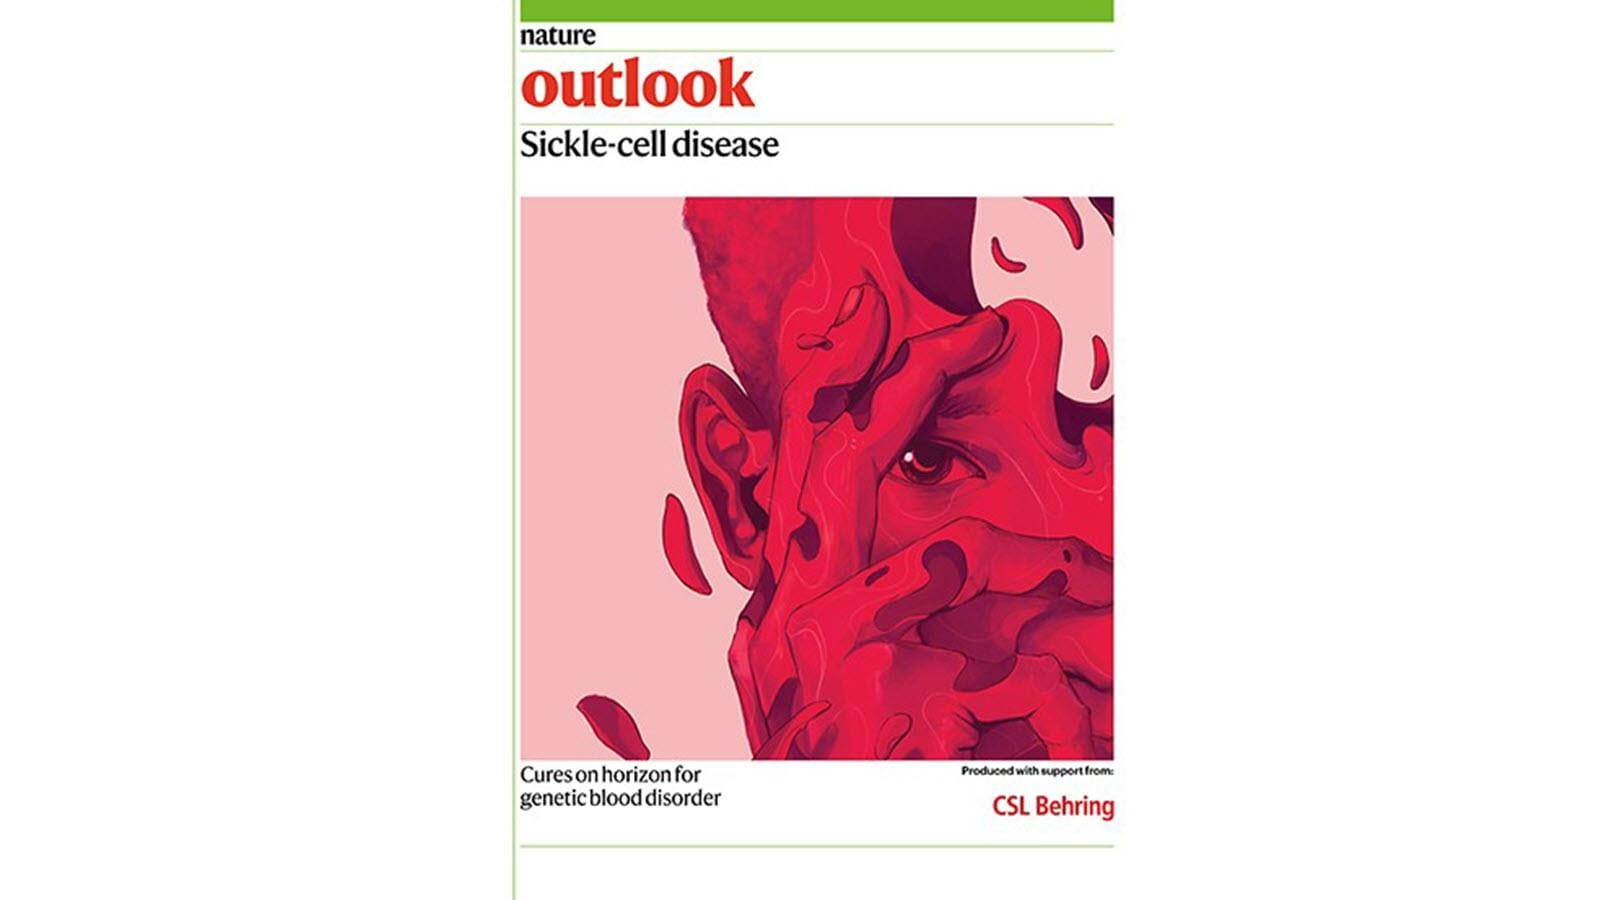 magazine cover of Nature Outlook featuring sickle cell disease